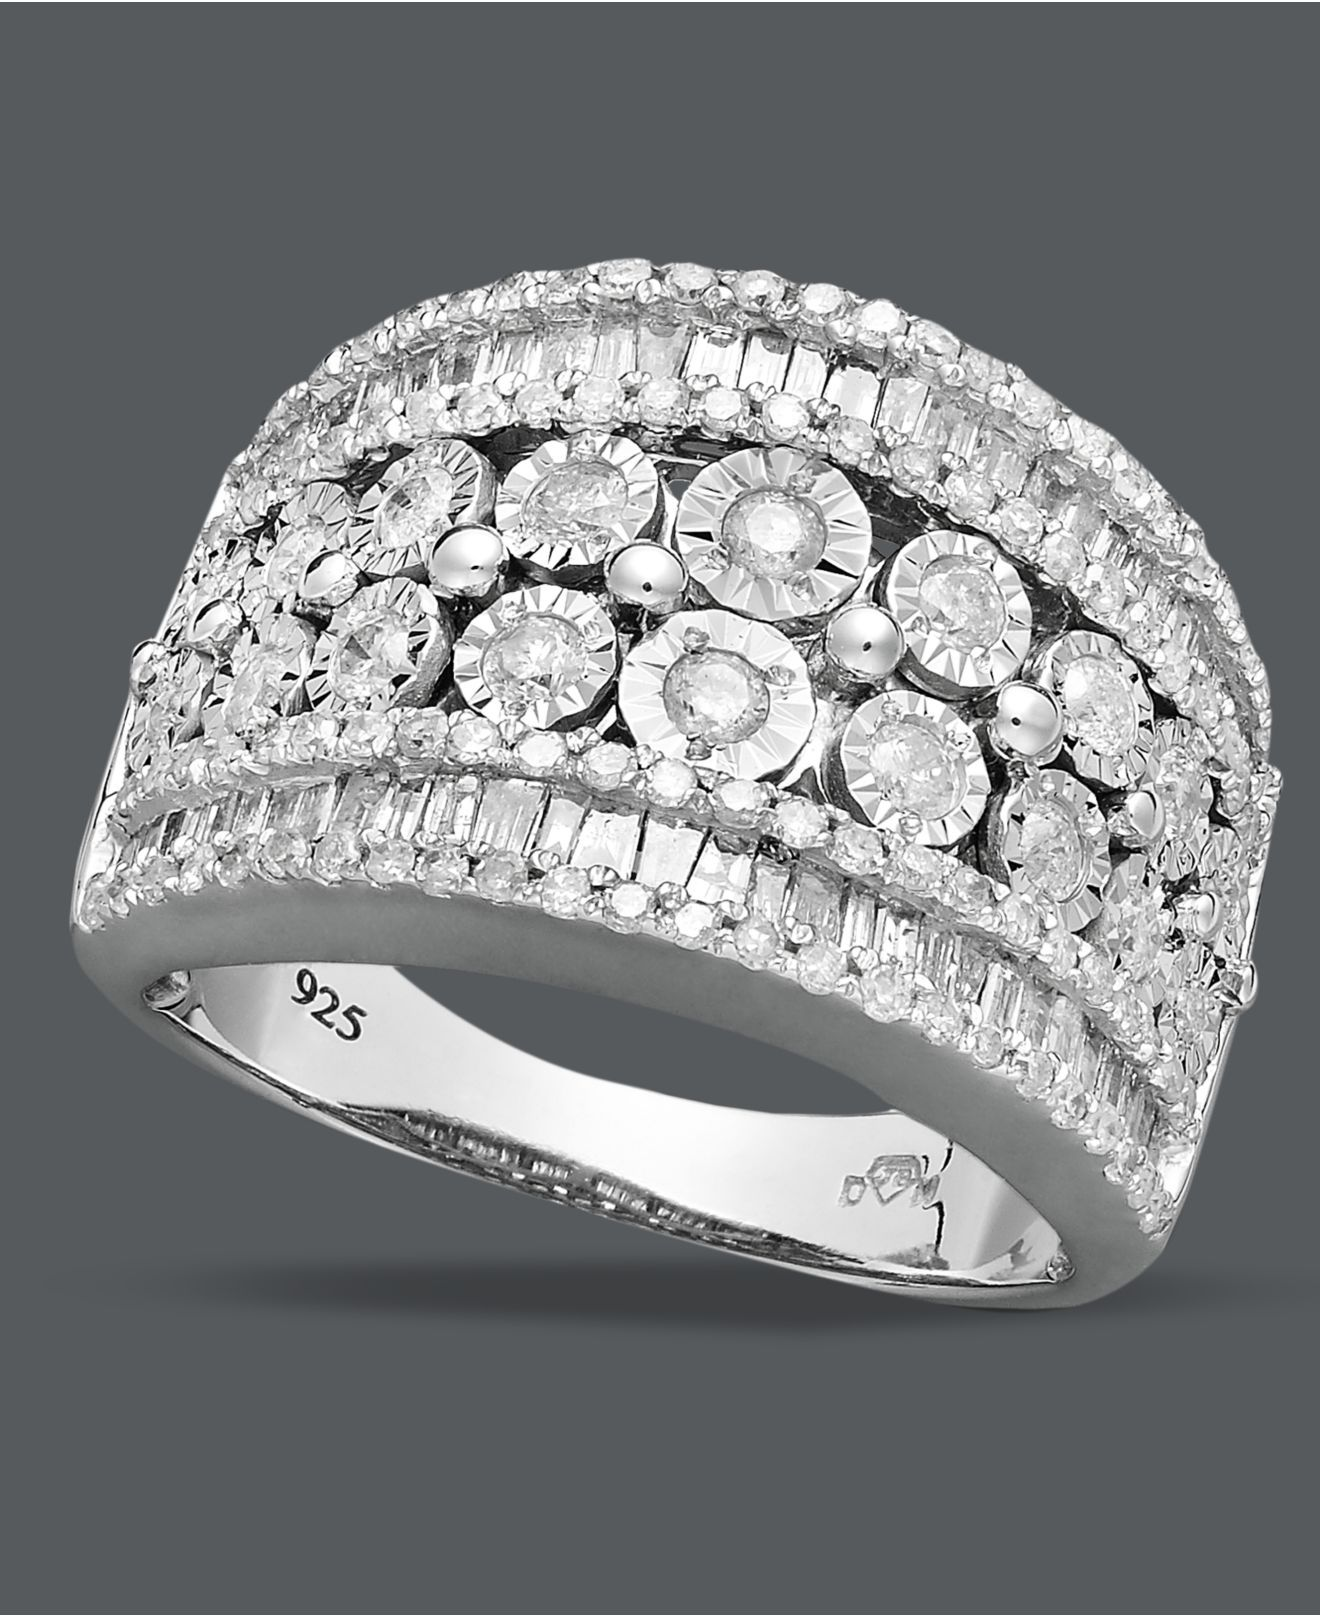 b403dc7fe Diamond Ring, Sterling Silver Diamond Band (1-1/4 ct. t.w.) at Macy's  12hundred